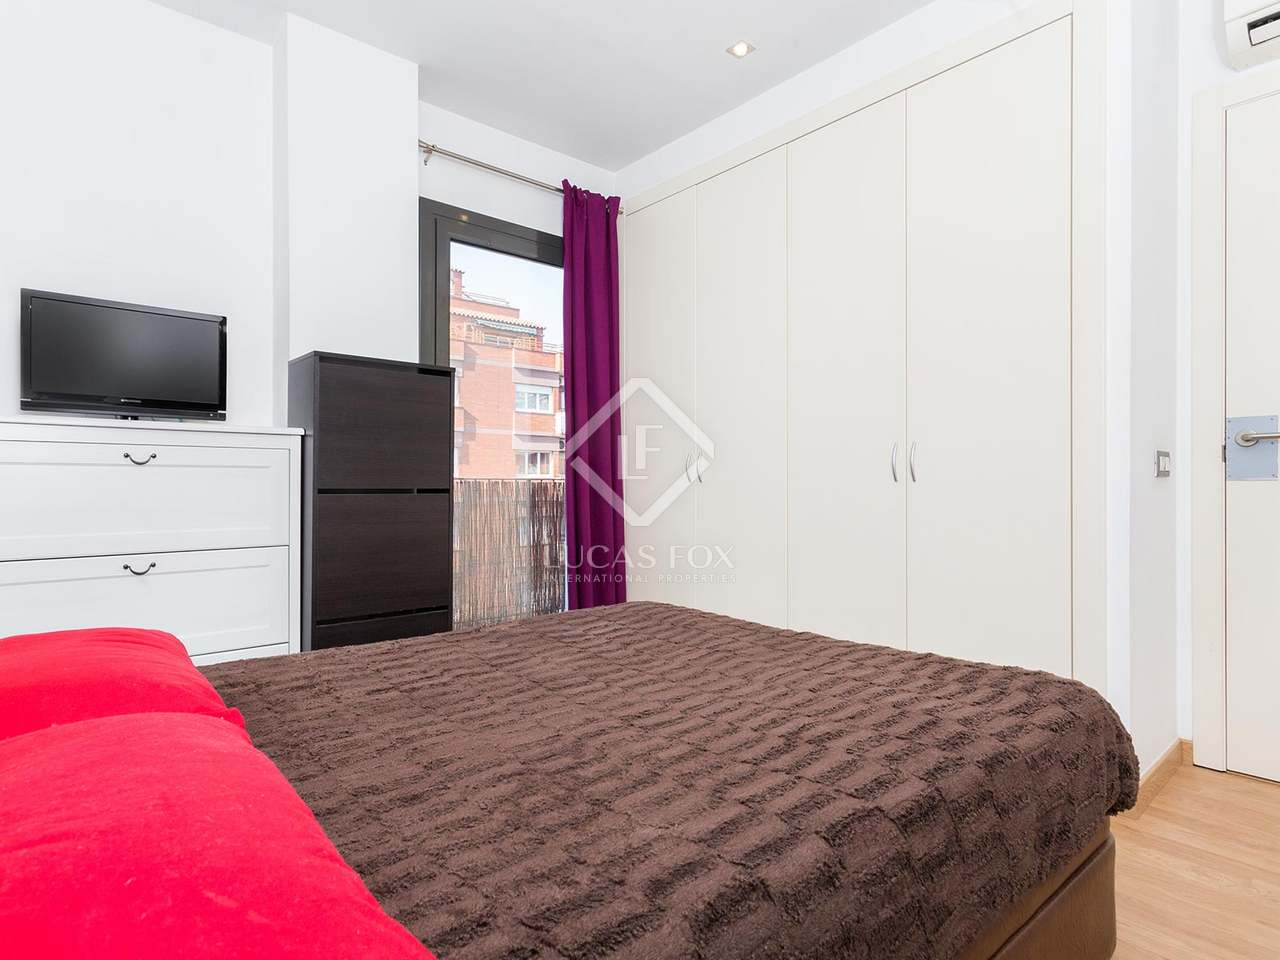 1 Bedroom Apartment With A Terrace For Sale Near Sants